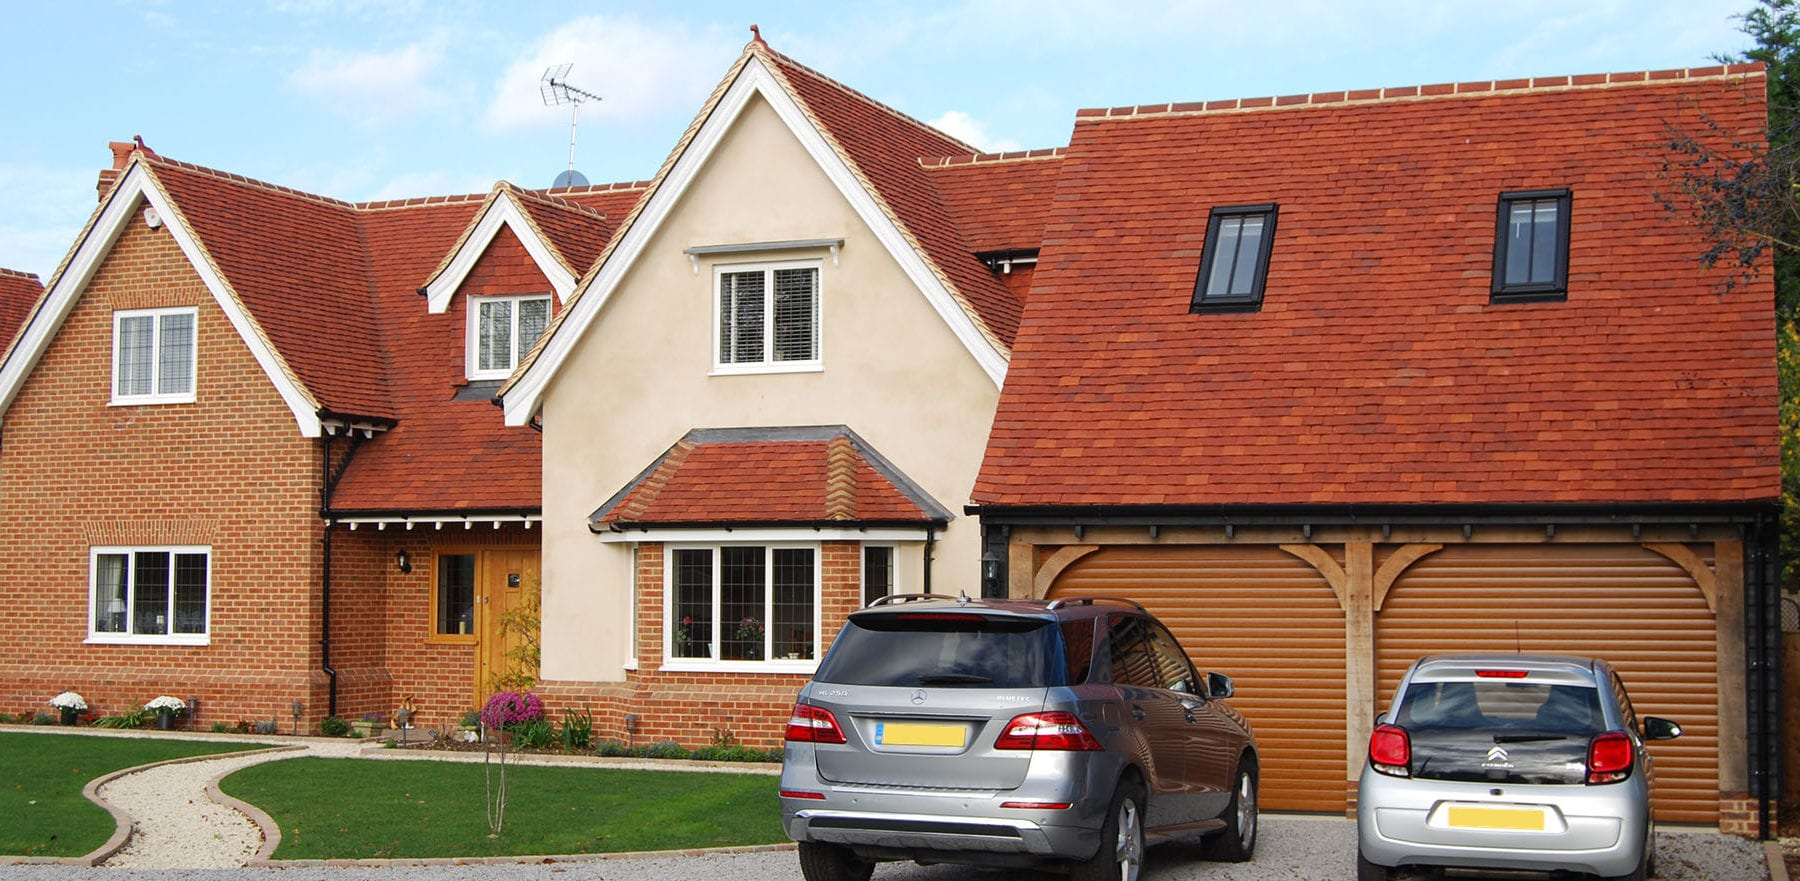 Lifestiles - Handmade Red Clay Roof Tiles - Rudley, England 2